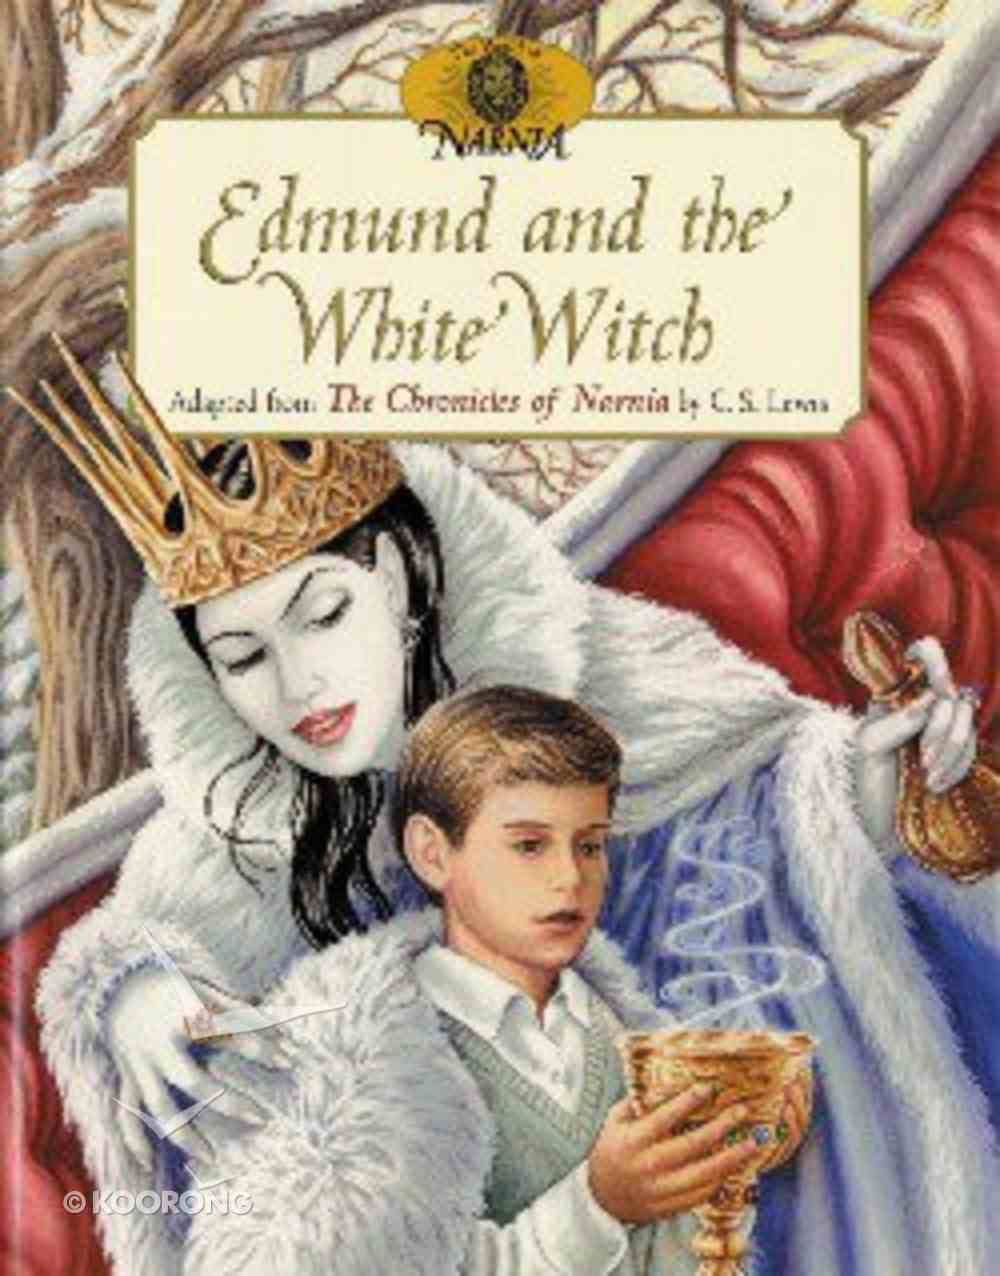 World of Narnia: Edmund and the White Witch Paperback